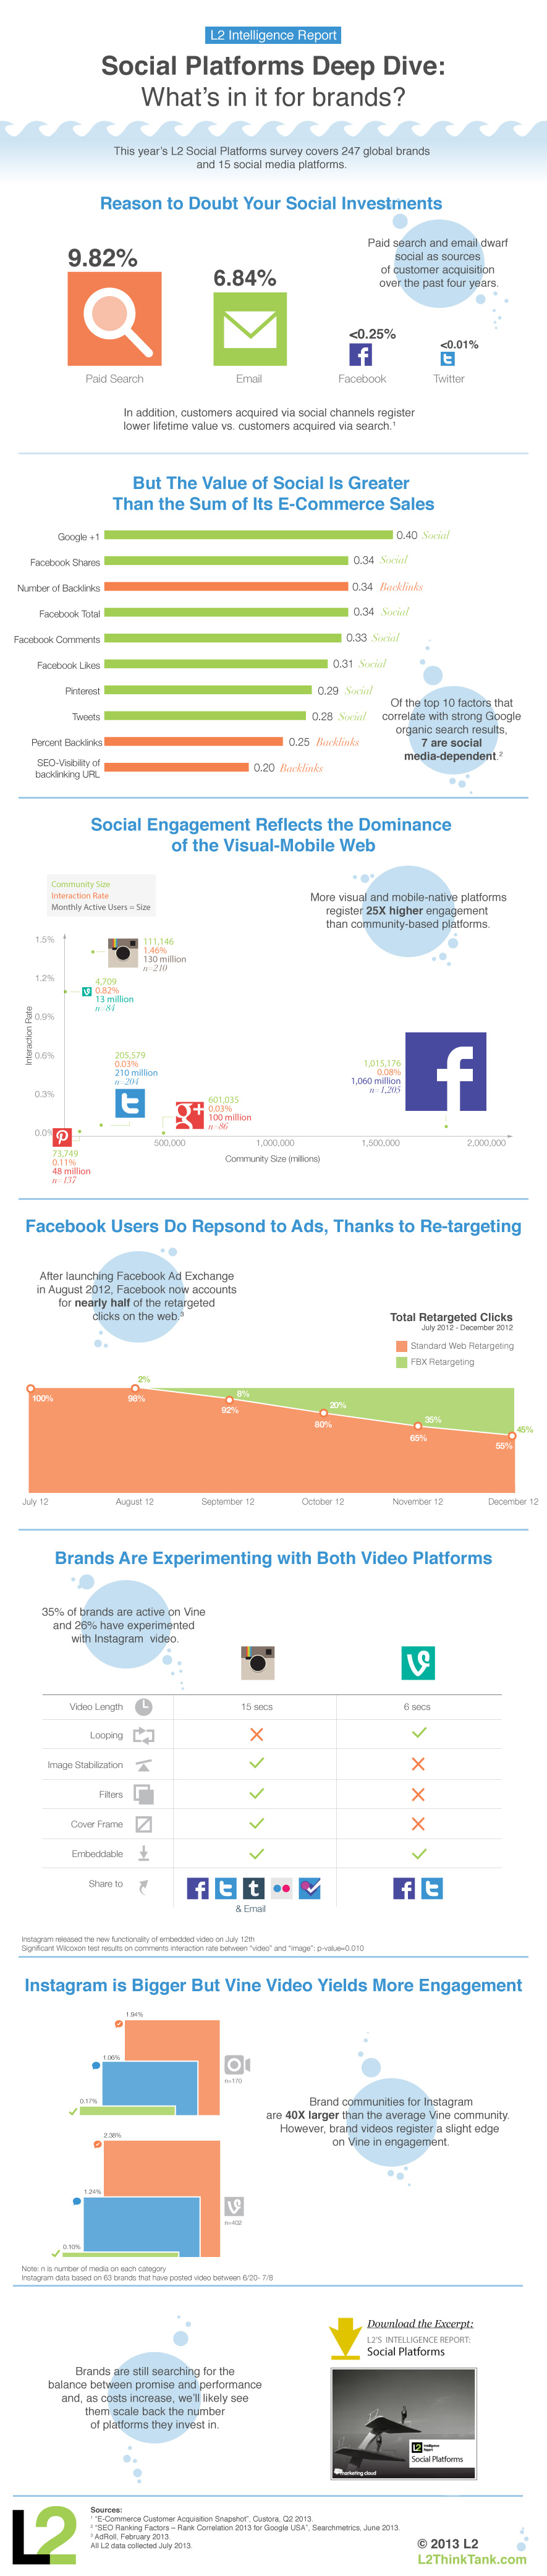 Social Platforms Deep Dive